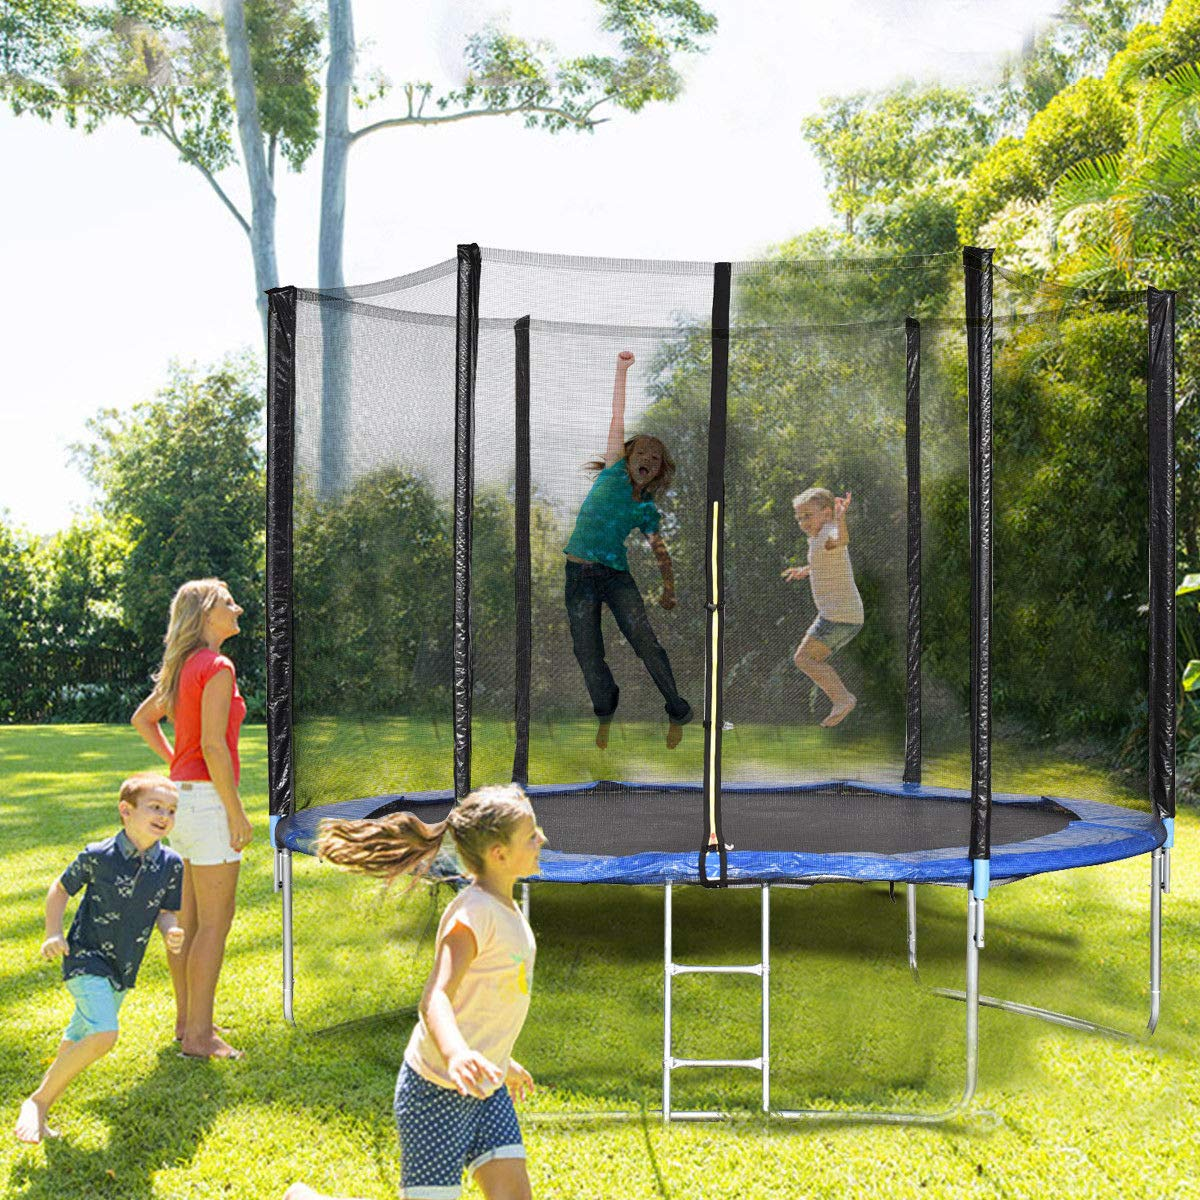 Giantex Trampoline Combo Bounce Jump Safety Enclosure Net W/Spring Pad Ladder (10 FT) by Giantex (Image #2)